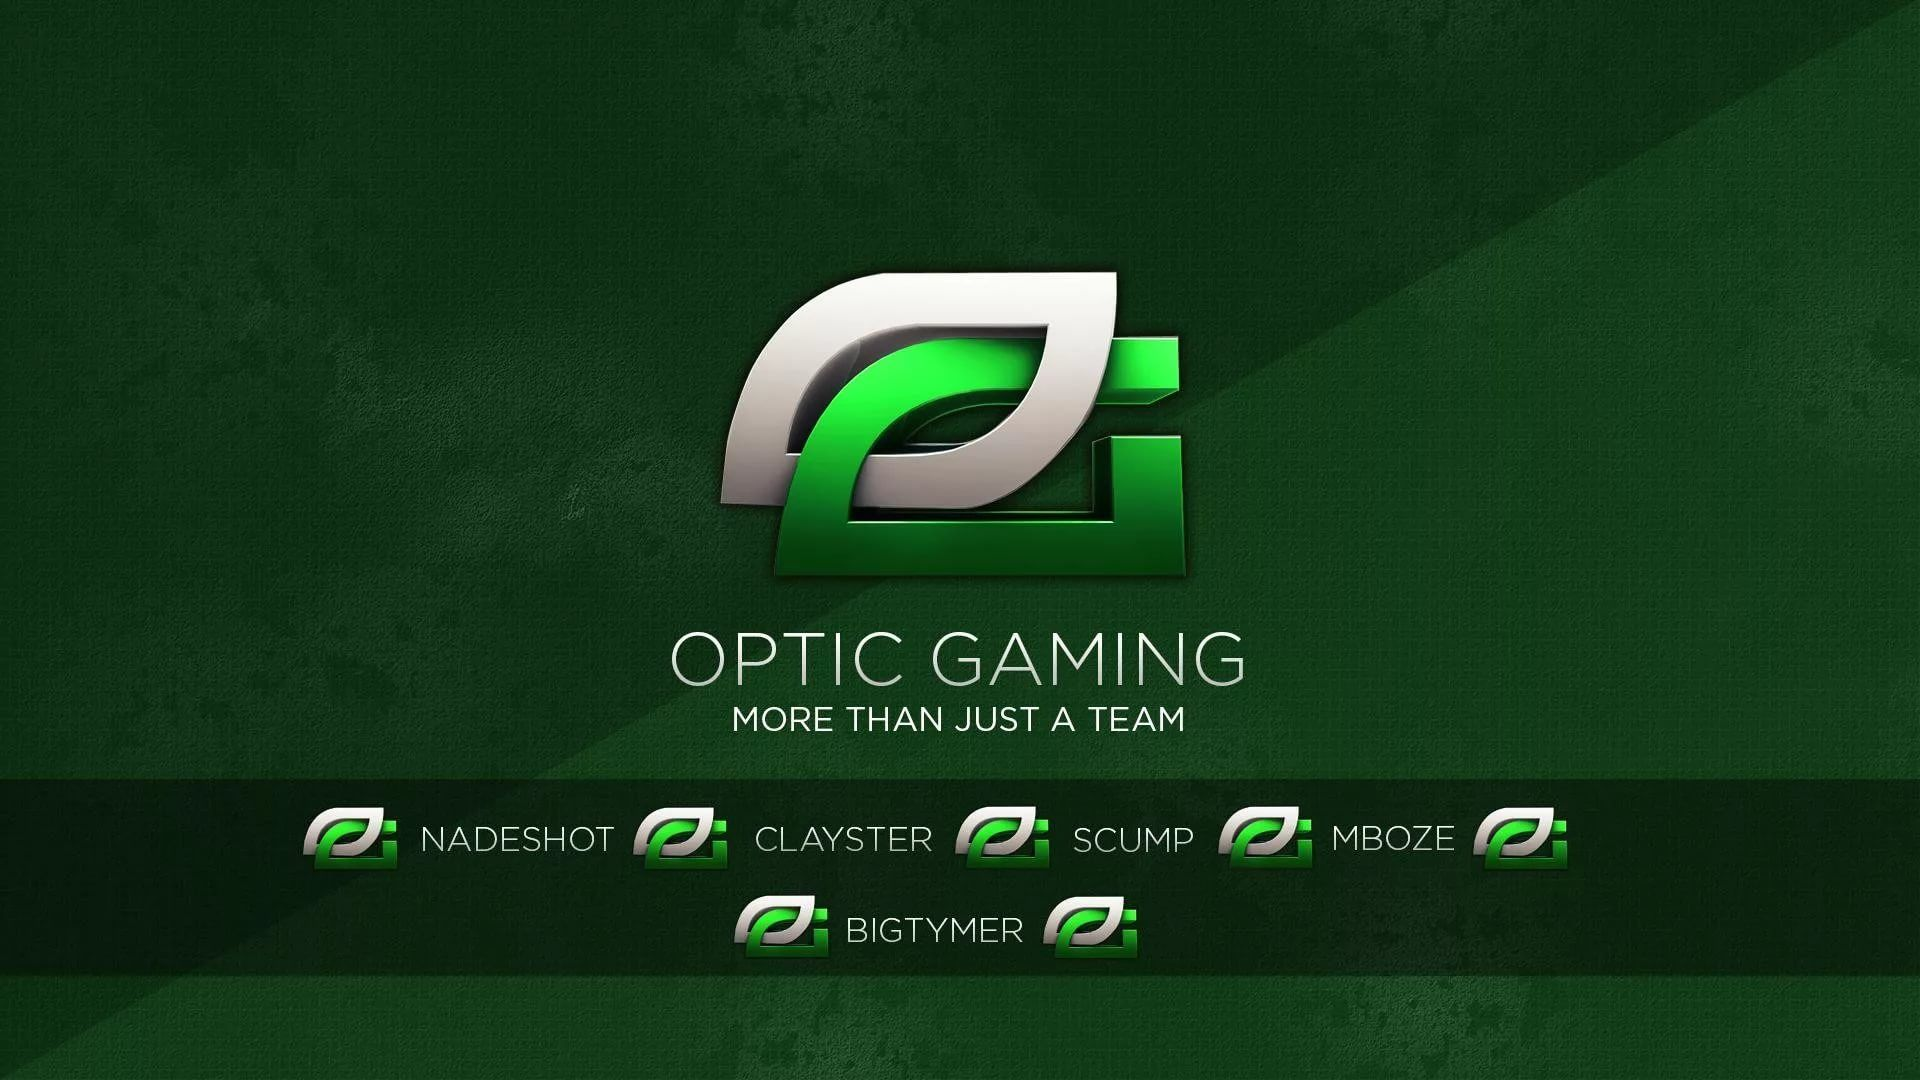 Optic Gaming Desktop Wallpaper